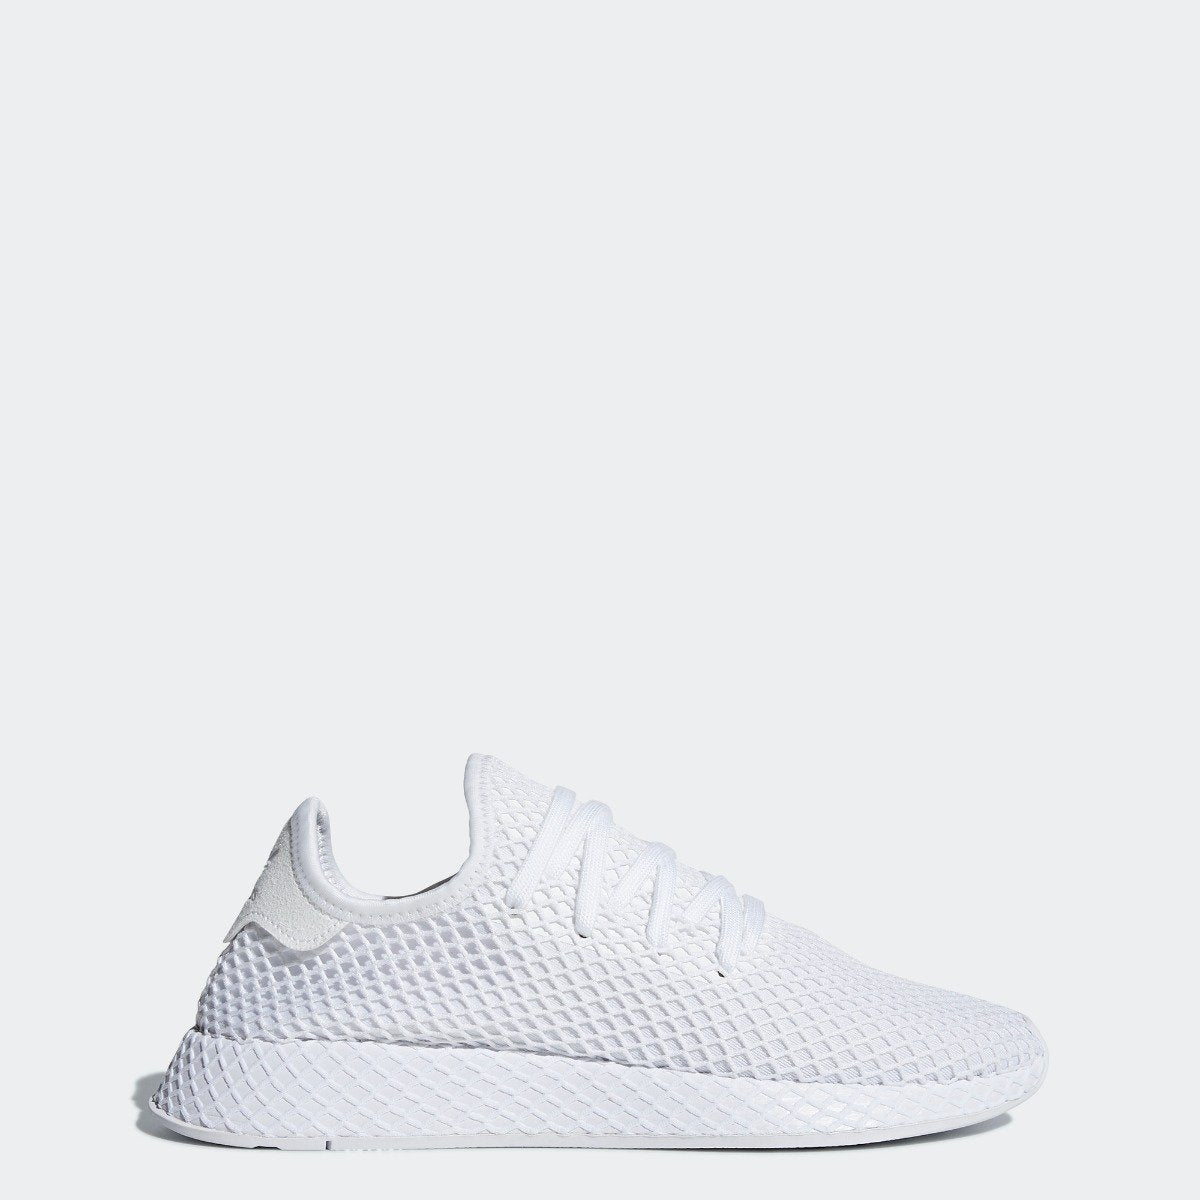 official photos dfc75 e32e5 Mens adidas Originals Deerupt Runner Shoes Cloud White